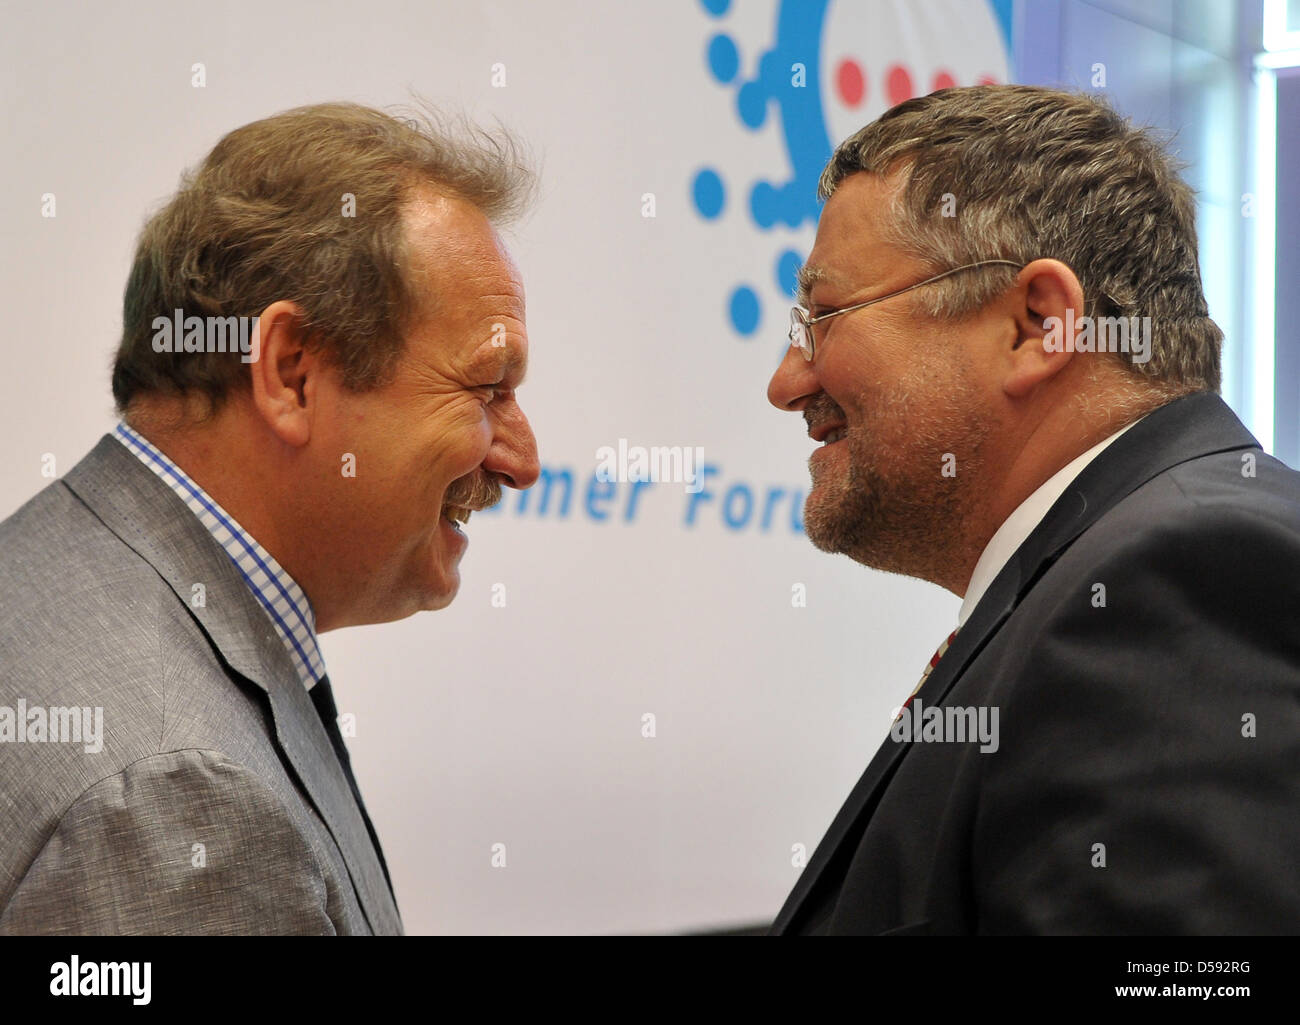 Verdi chairman Frank Bsirske (L) talks to Brandenburg's Interiour Minister Rainer Speer at the 8th Potsdam Forum - Stock Image